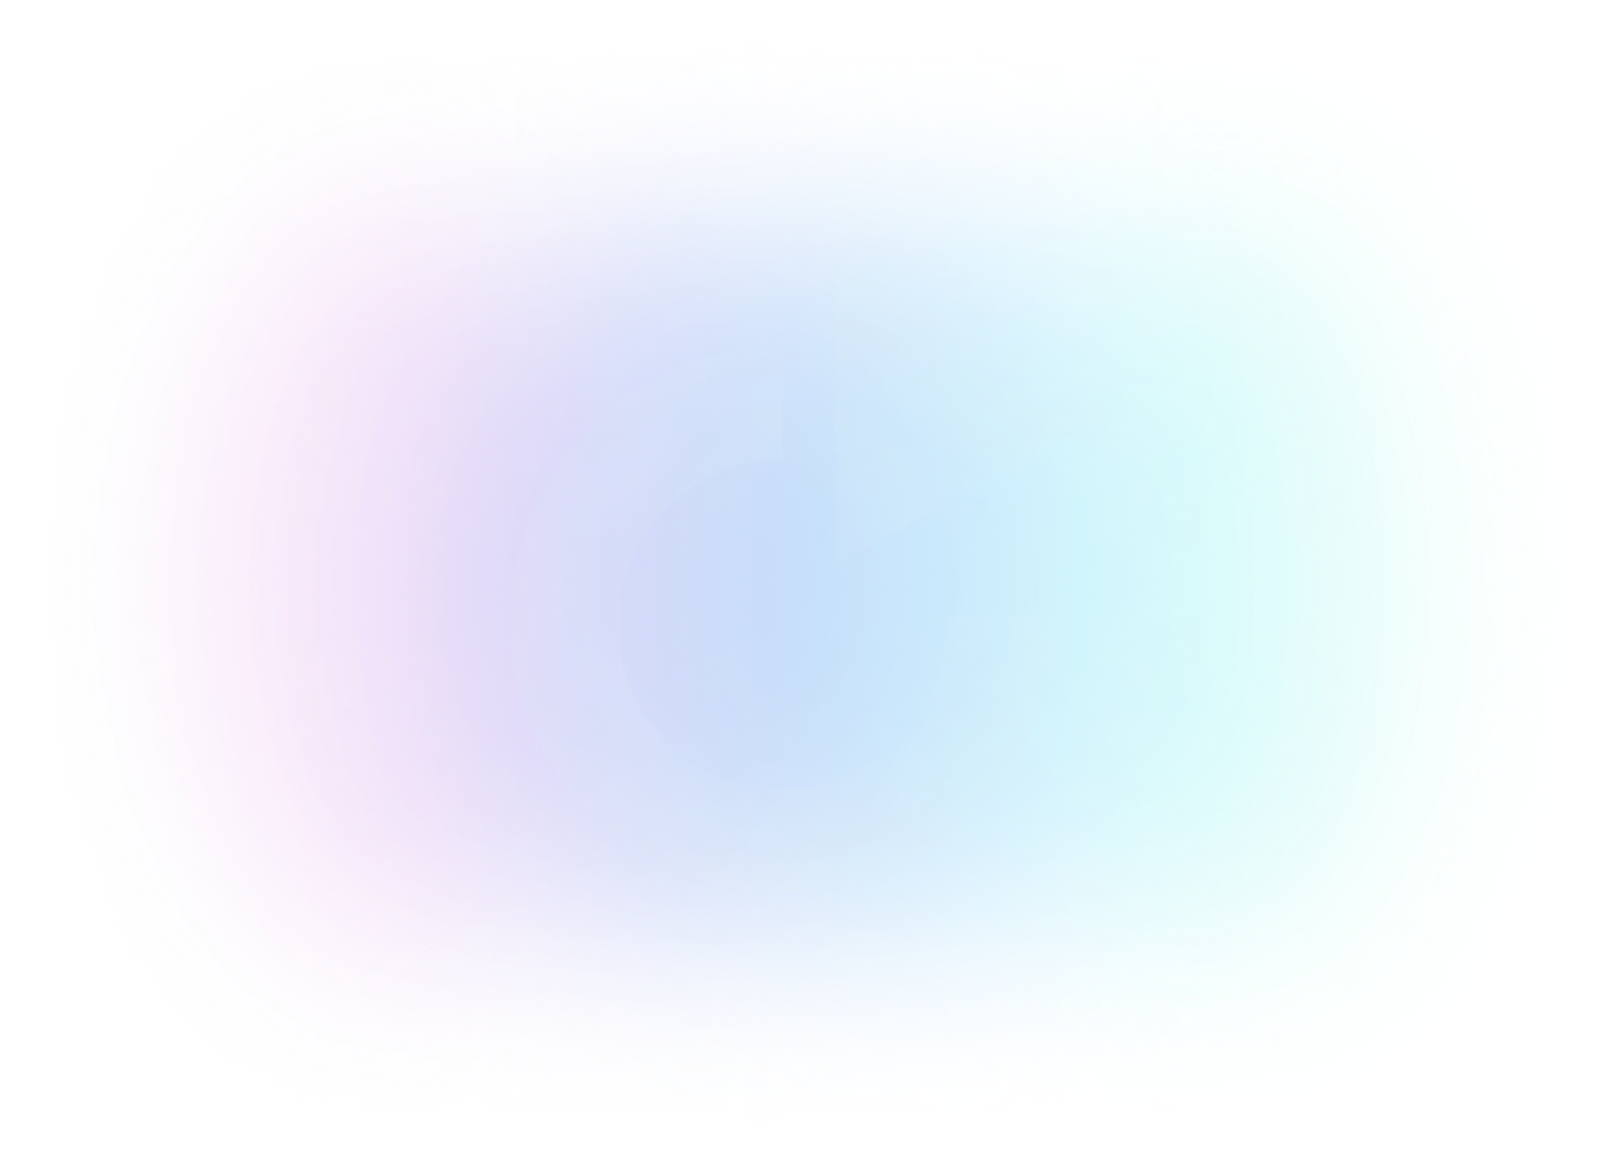 incard logo with blurred background